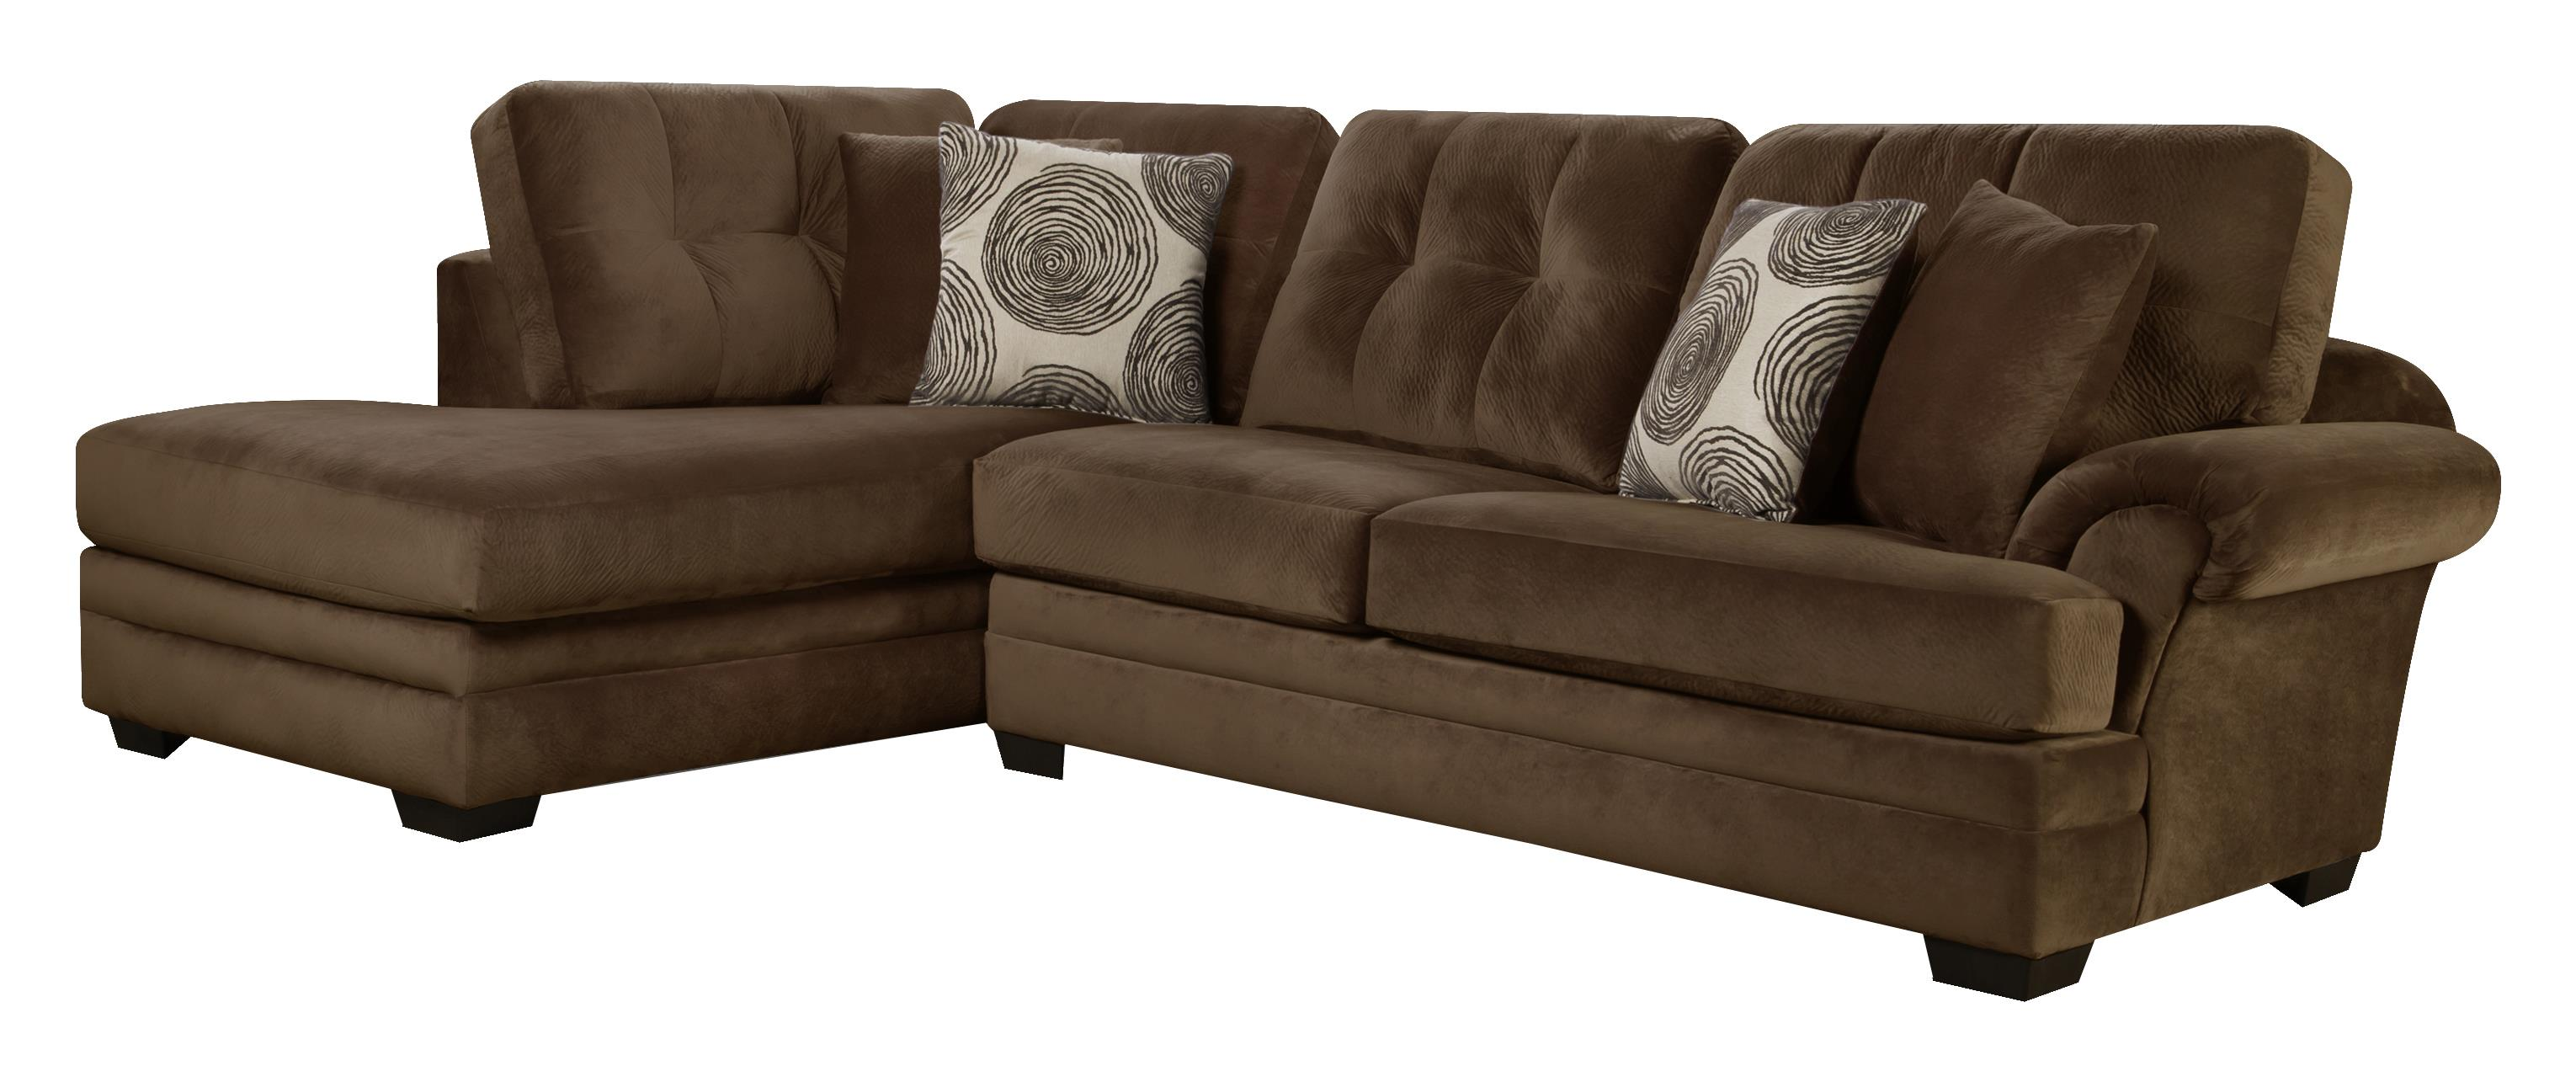 Couch Left Side Chaise